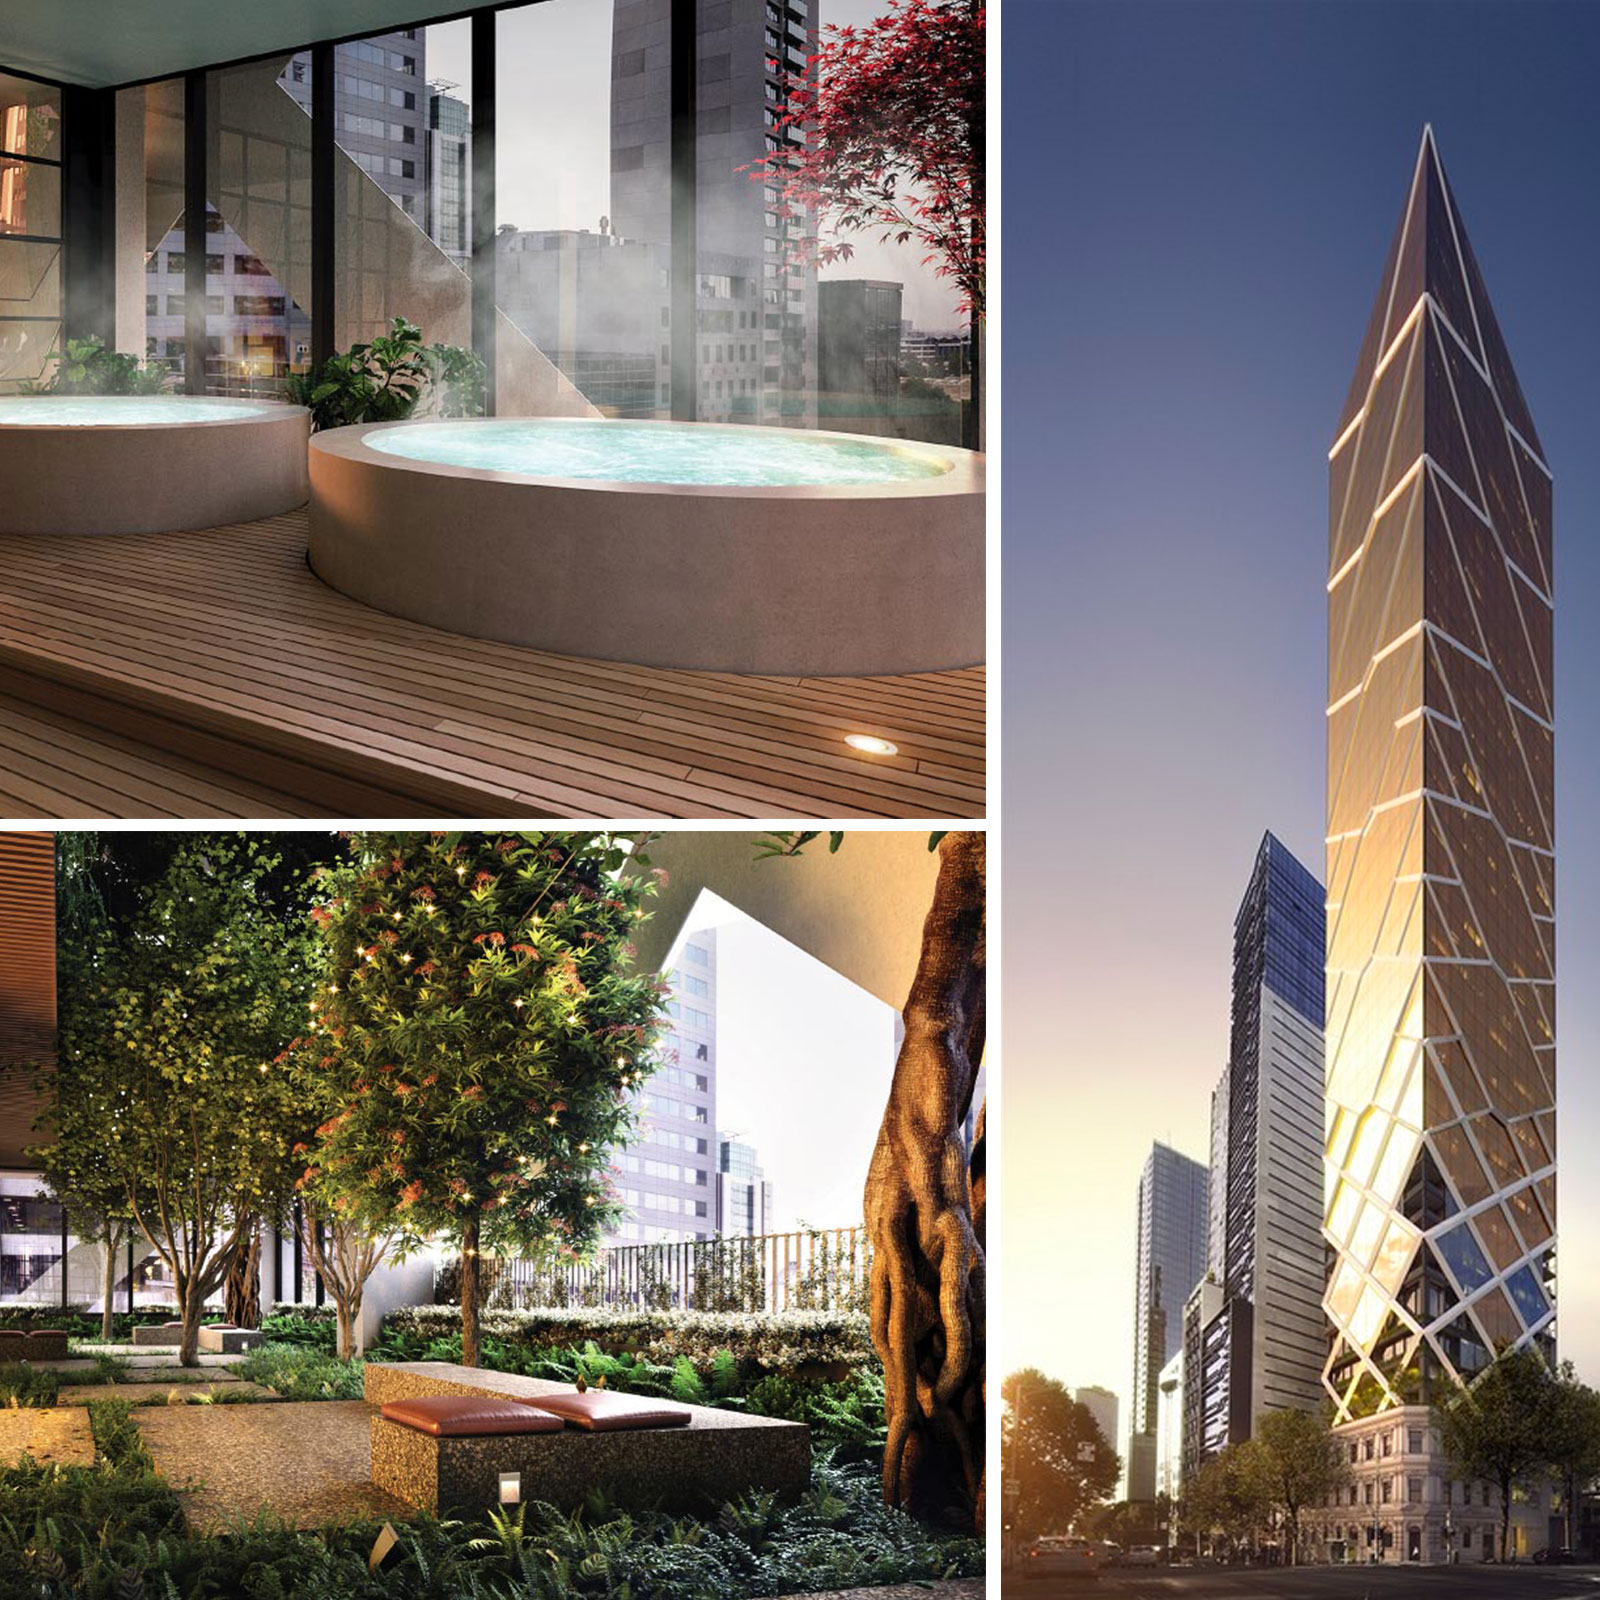 Paragon will include a three-storey indoor forest, a professional kitchen and lounge with views across the CBD, a library, private theatre and a wellness centre.